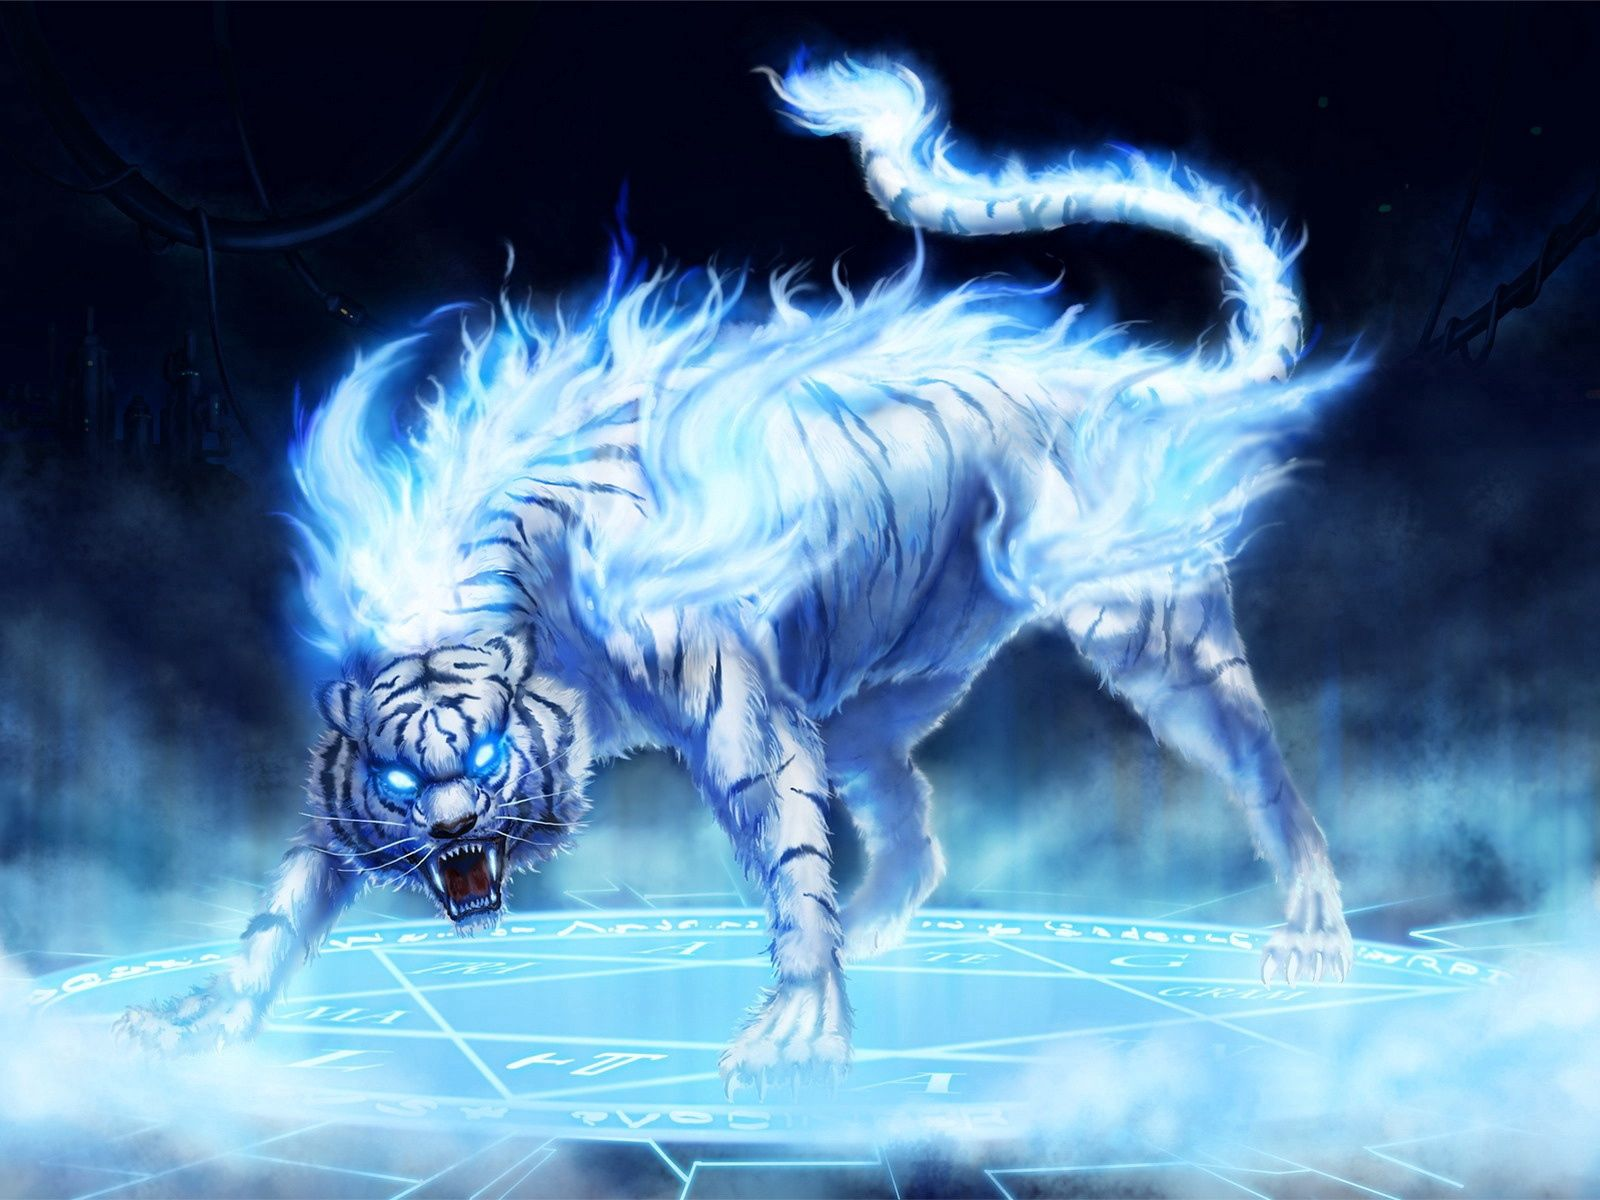 75611 download wallpaper Fantasy, Tiger, Fire, Anger, Eyes screensavers and pictures for free